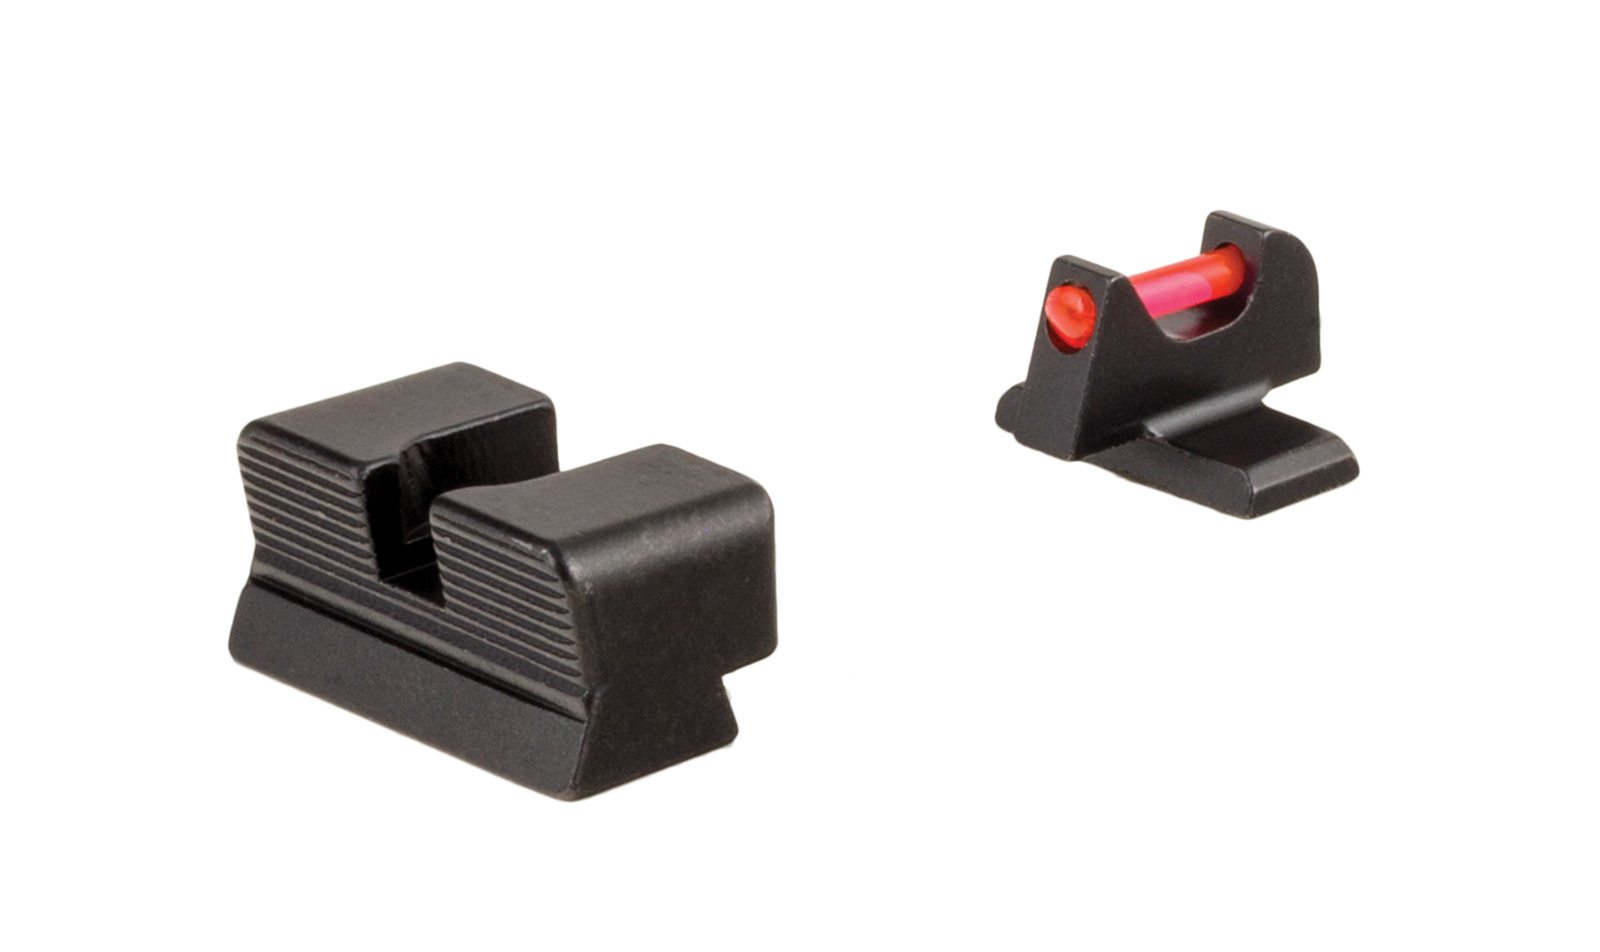 Trijicon<sup>®</sup> Fiber Sights - for Sig Sauer<sup>®</sup> #6 Front / #8 Rear